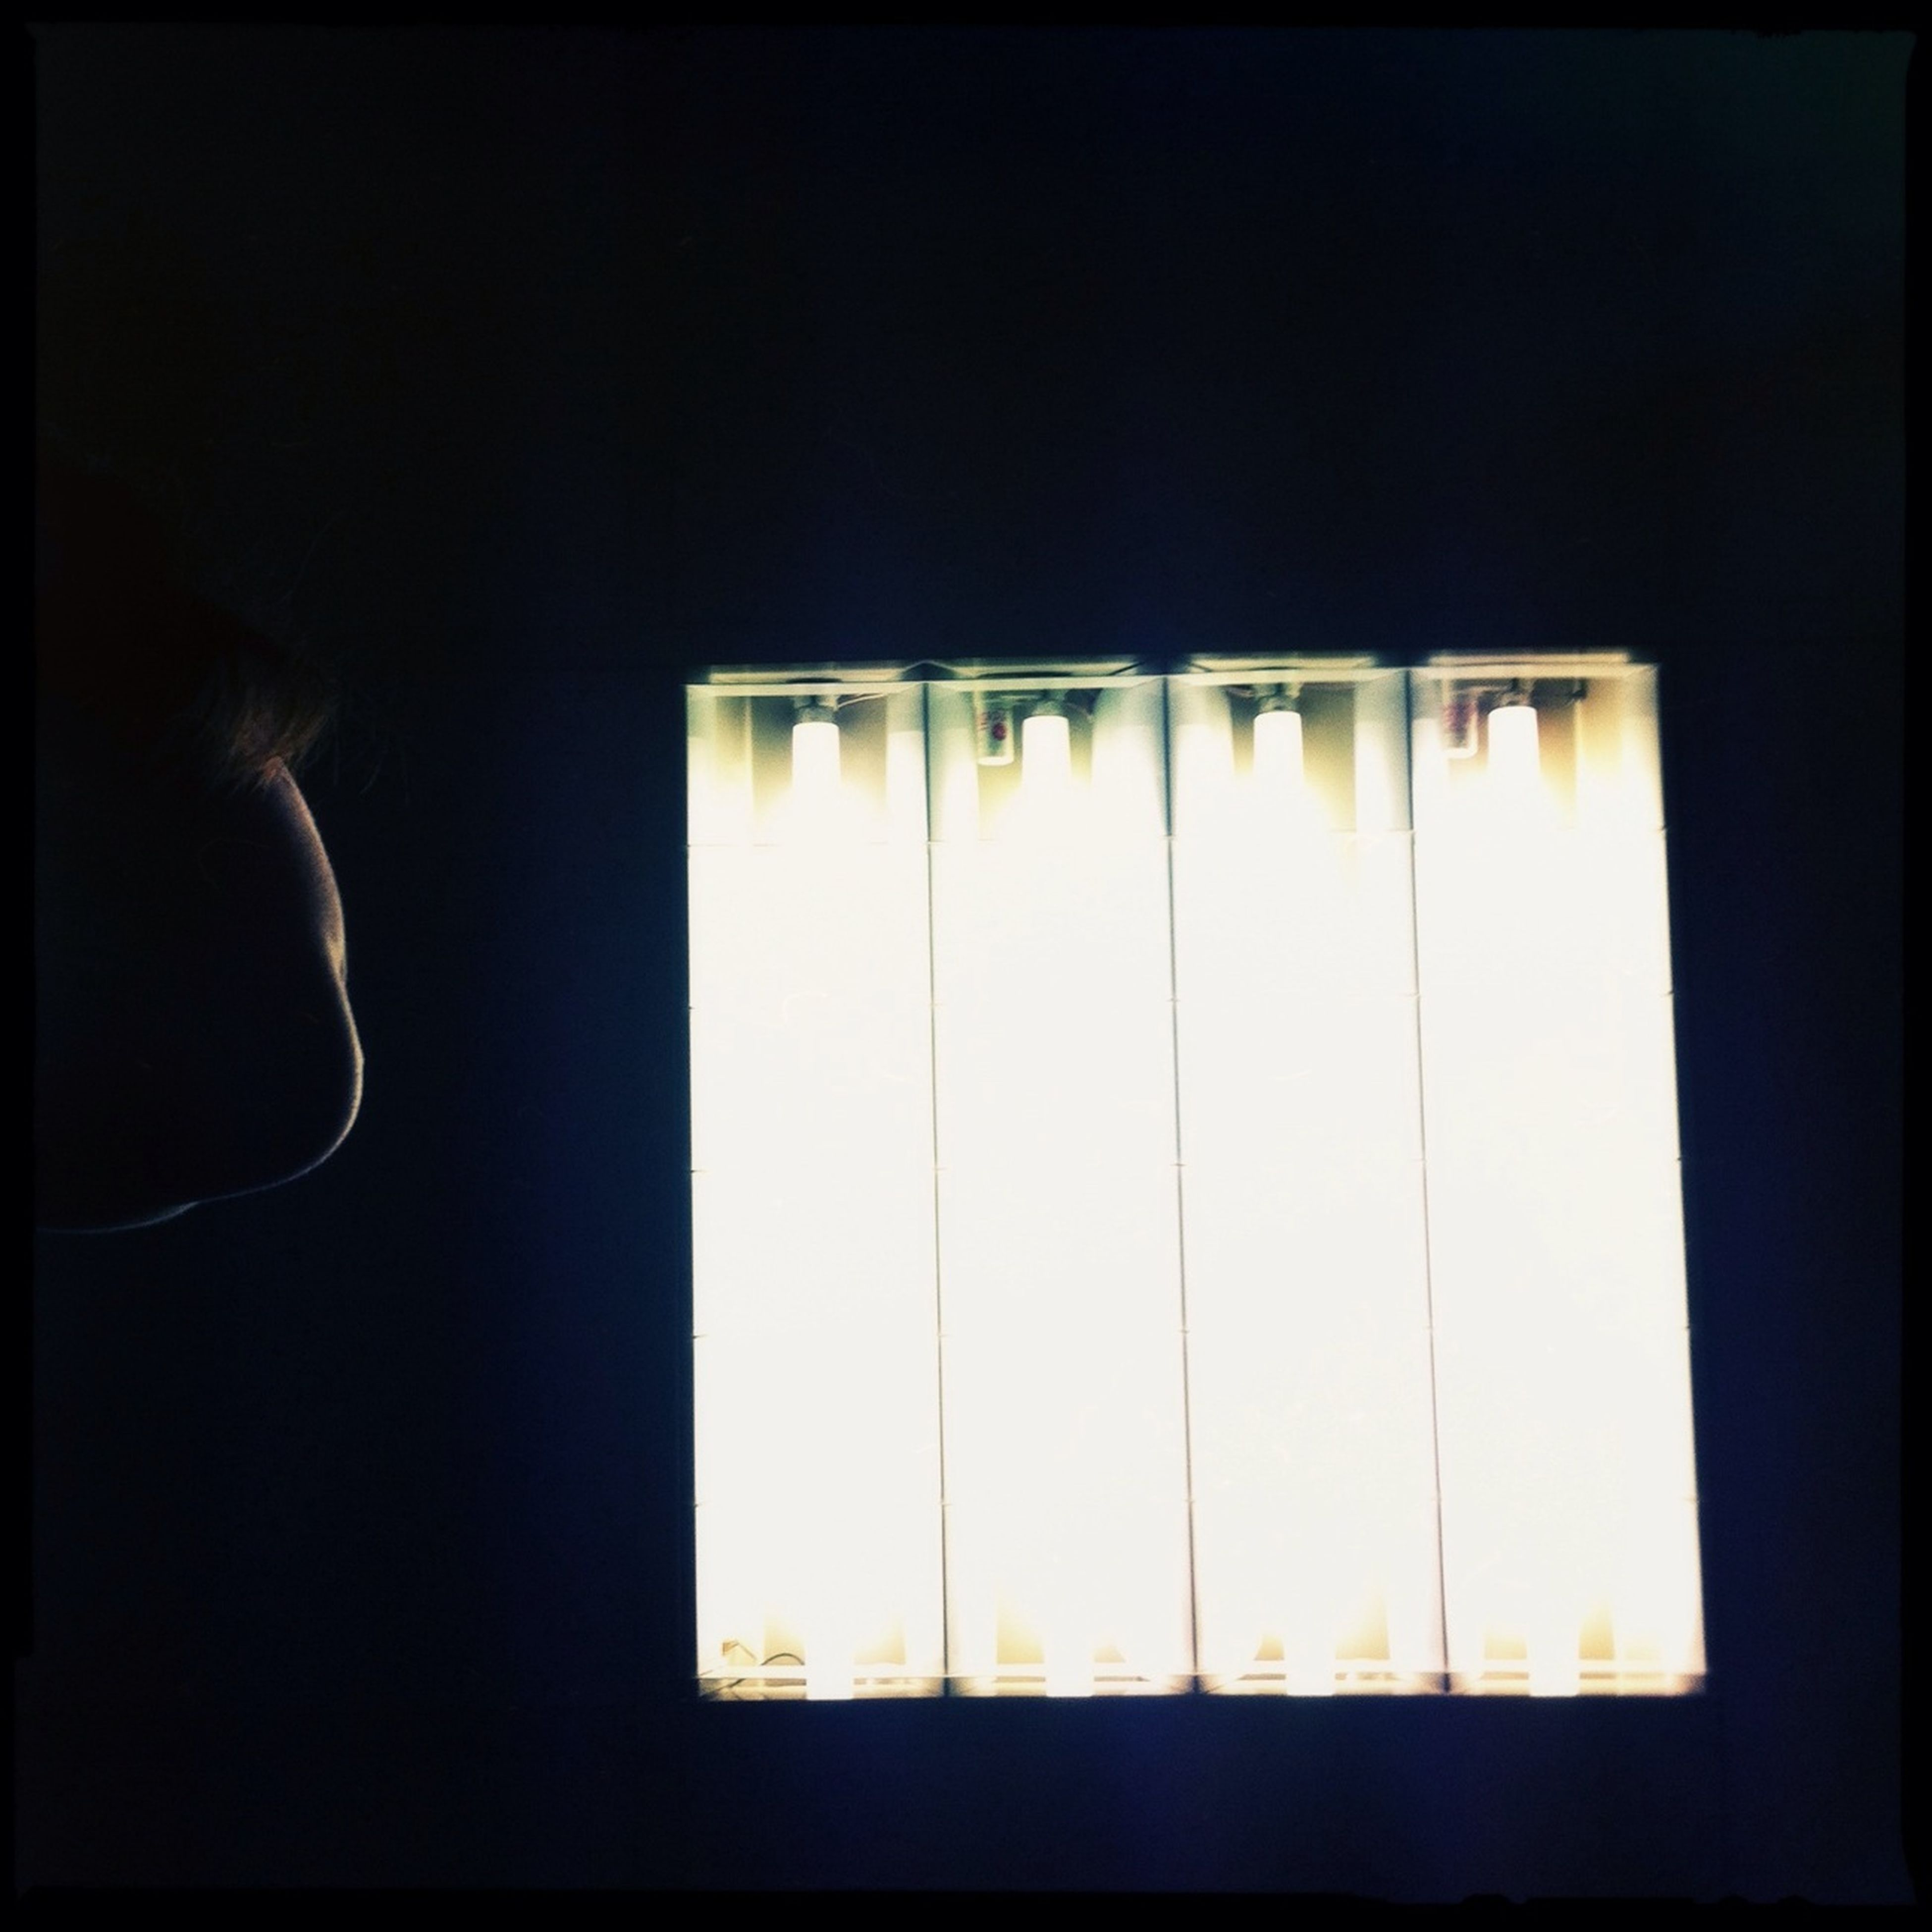 indoors, curtain, window, copy space, transfer print, dark, home interior, auto post production filter, wall, wall - building feature, closed, part of, domestic room, room, silhouette, open, door